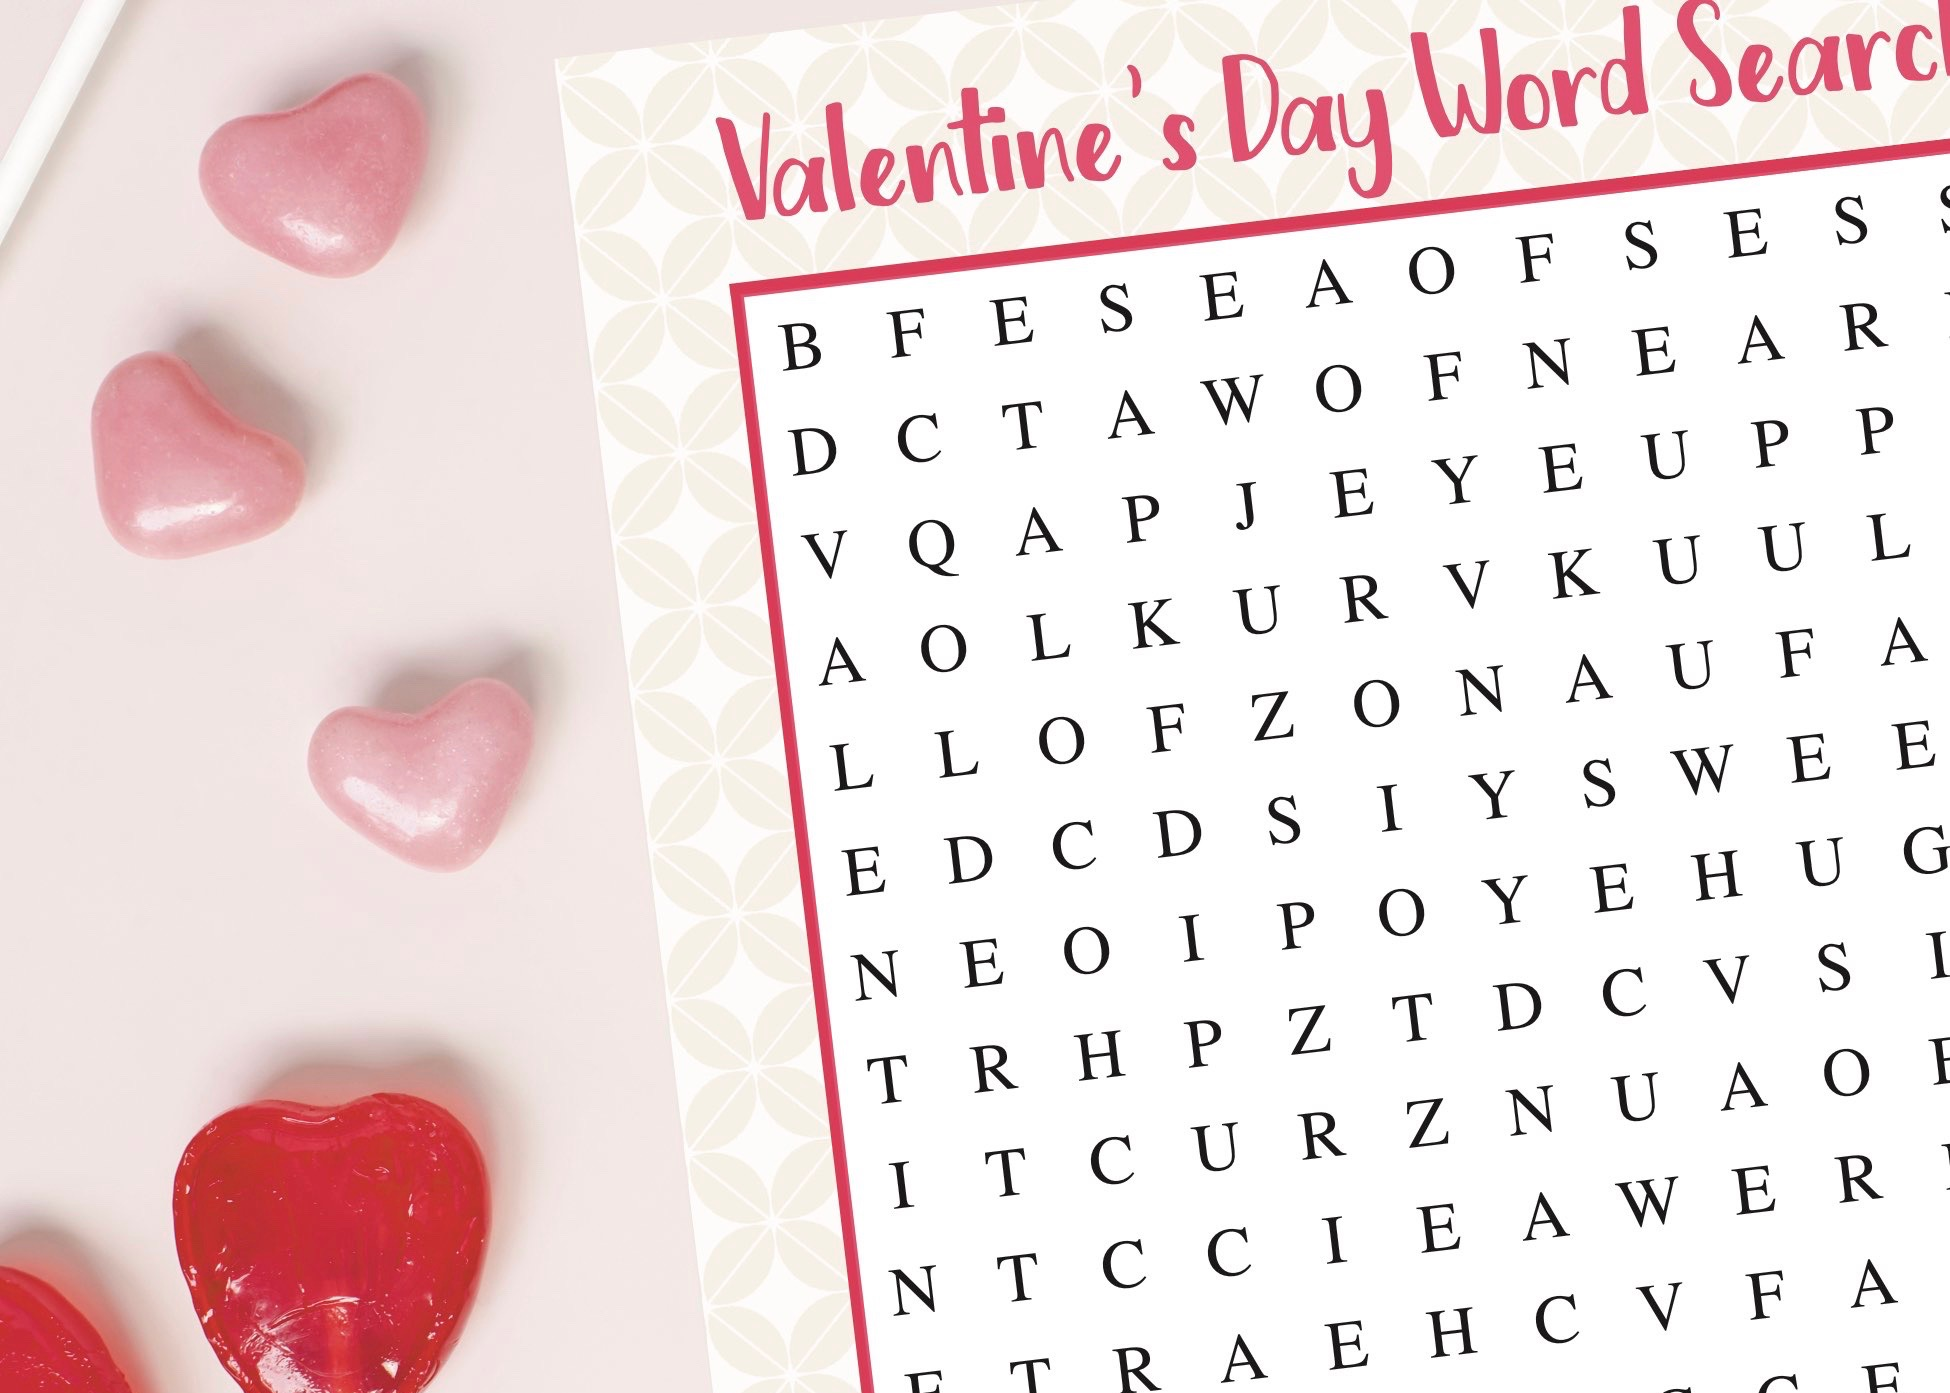 picture regarding Valentine Word Search Printable titled Valentines Working day Term Look Printable - Every day Get together Journal